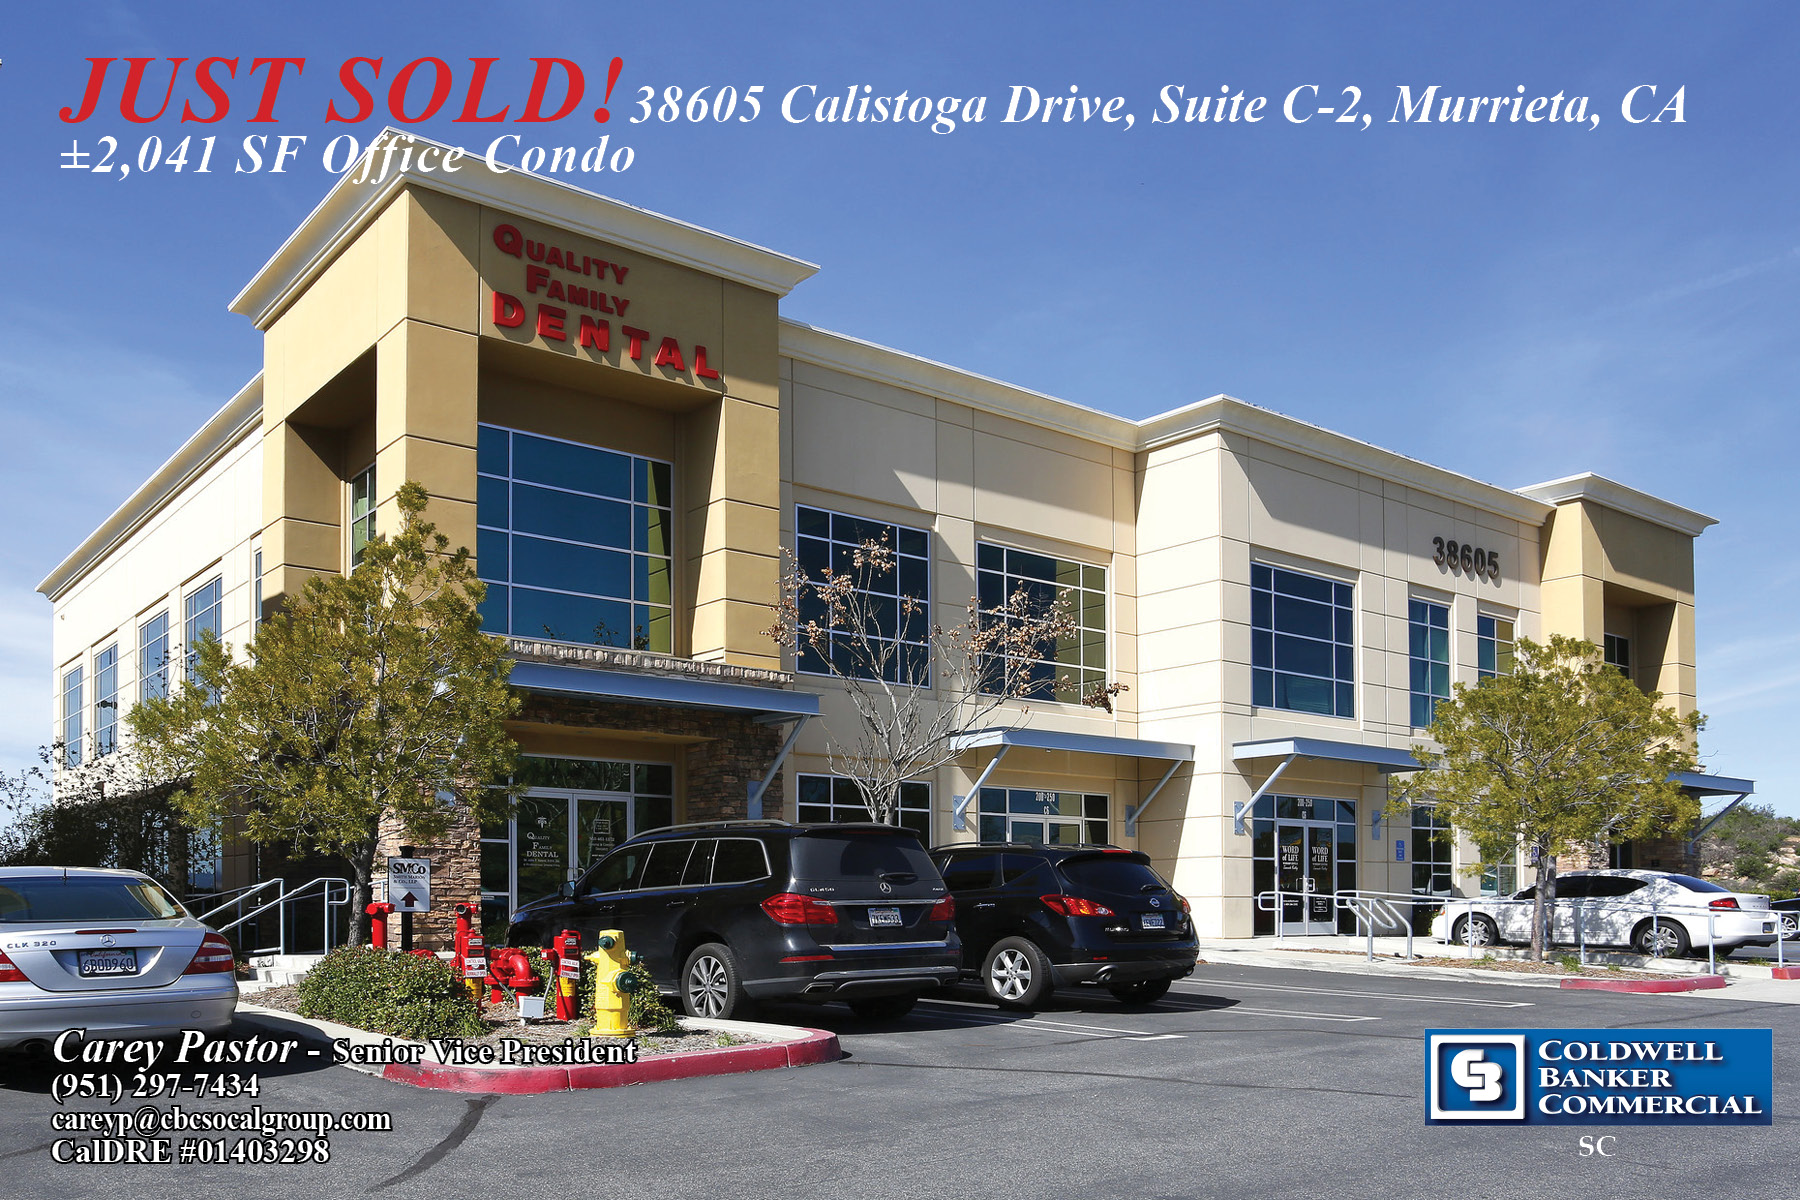 SOLD! ±2,041 SF Office Condo in Murrieta